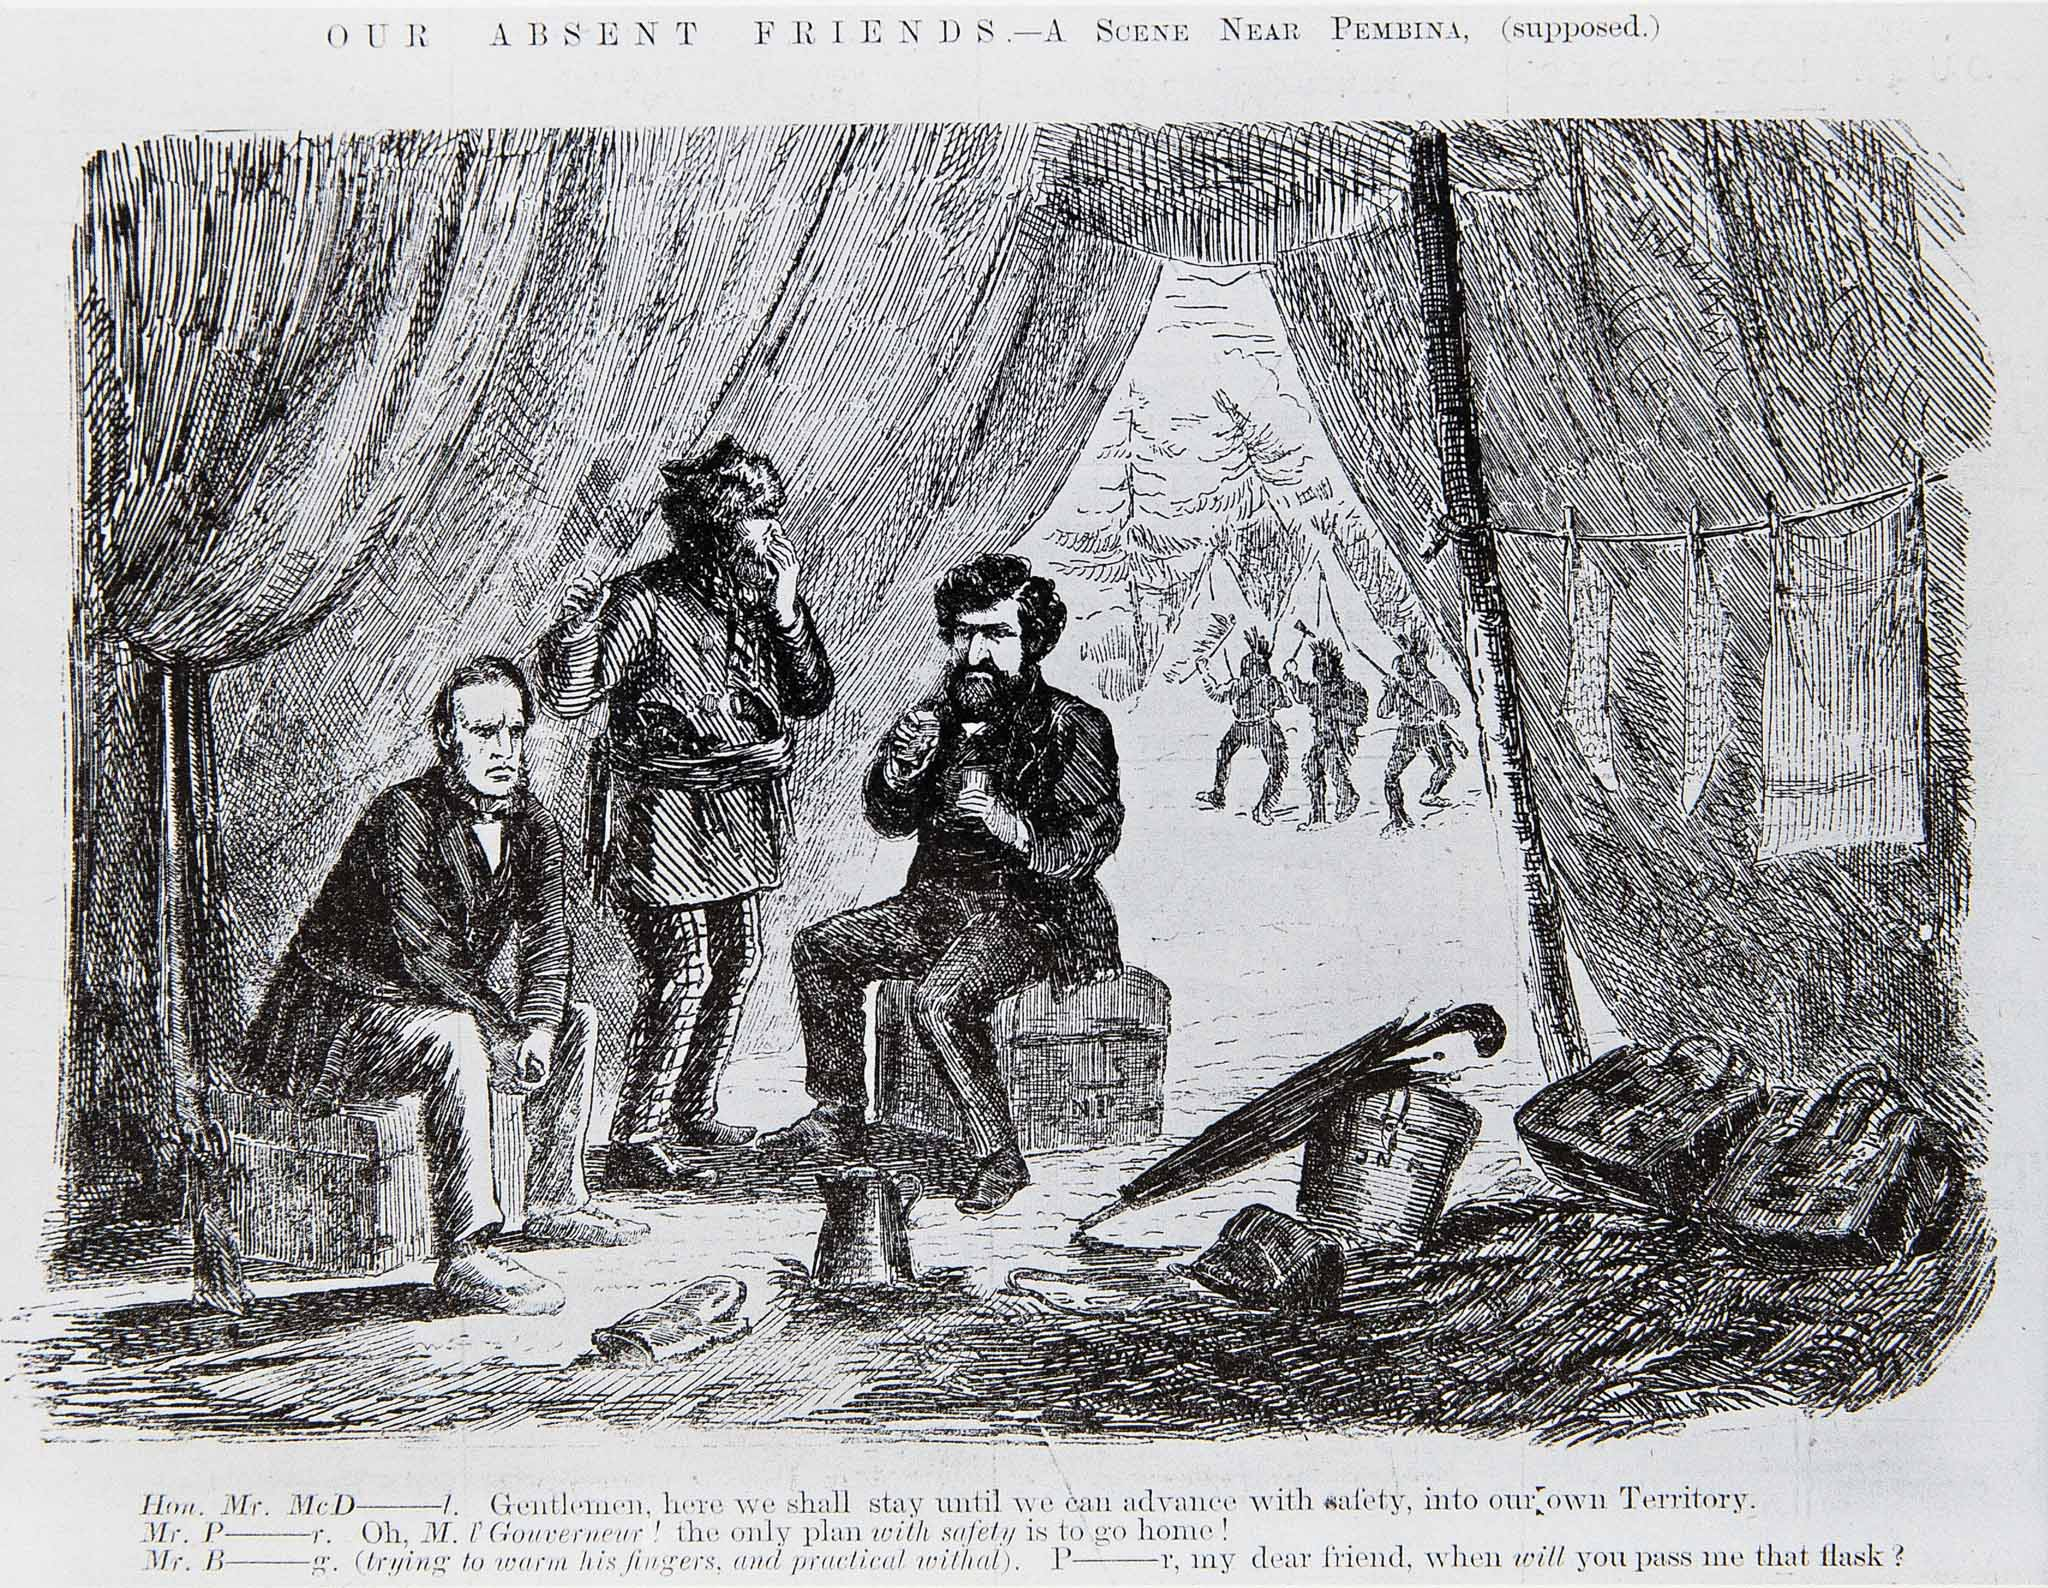 1870 political cartoon of William McDougall at Pembina. (Archives of Manitoba)